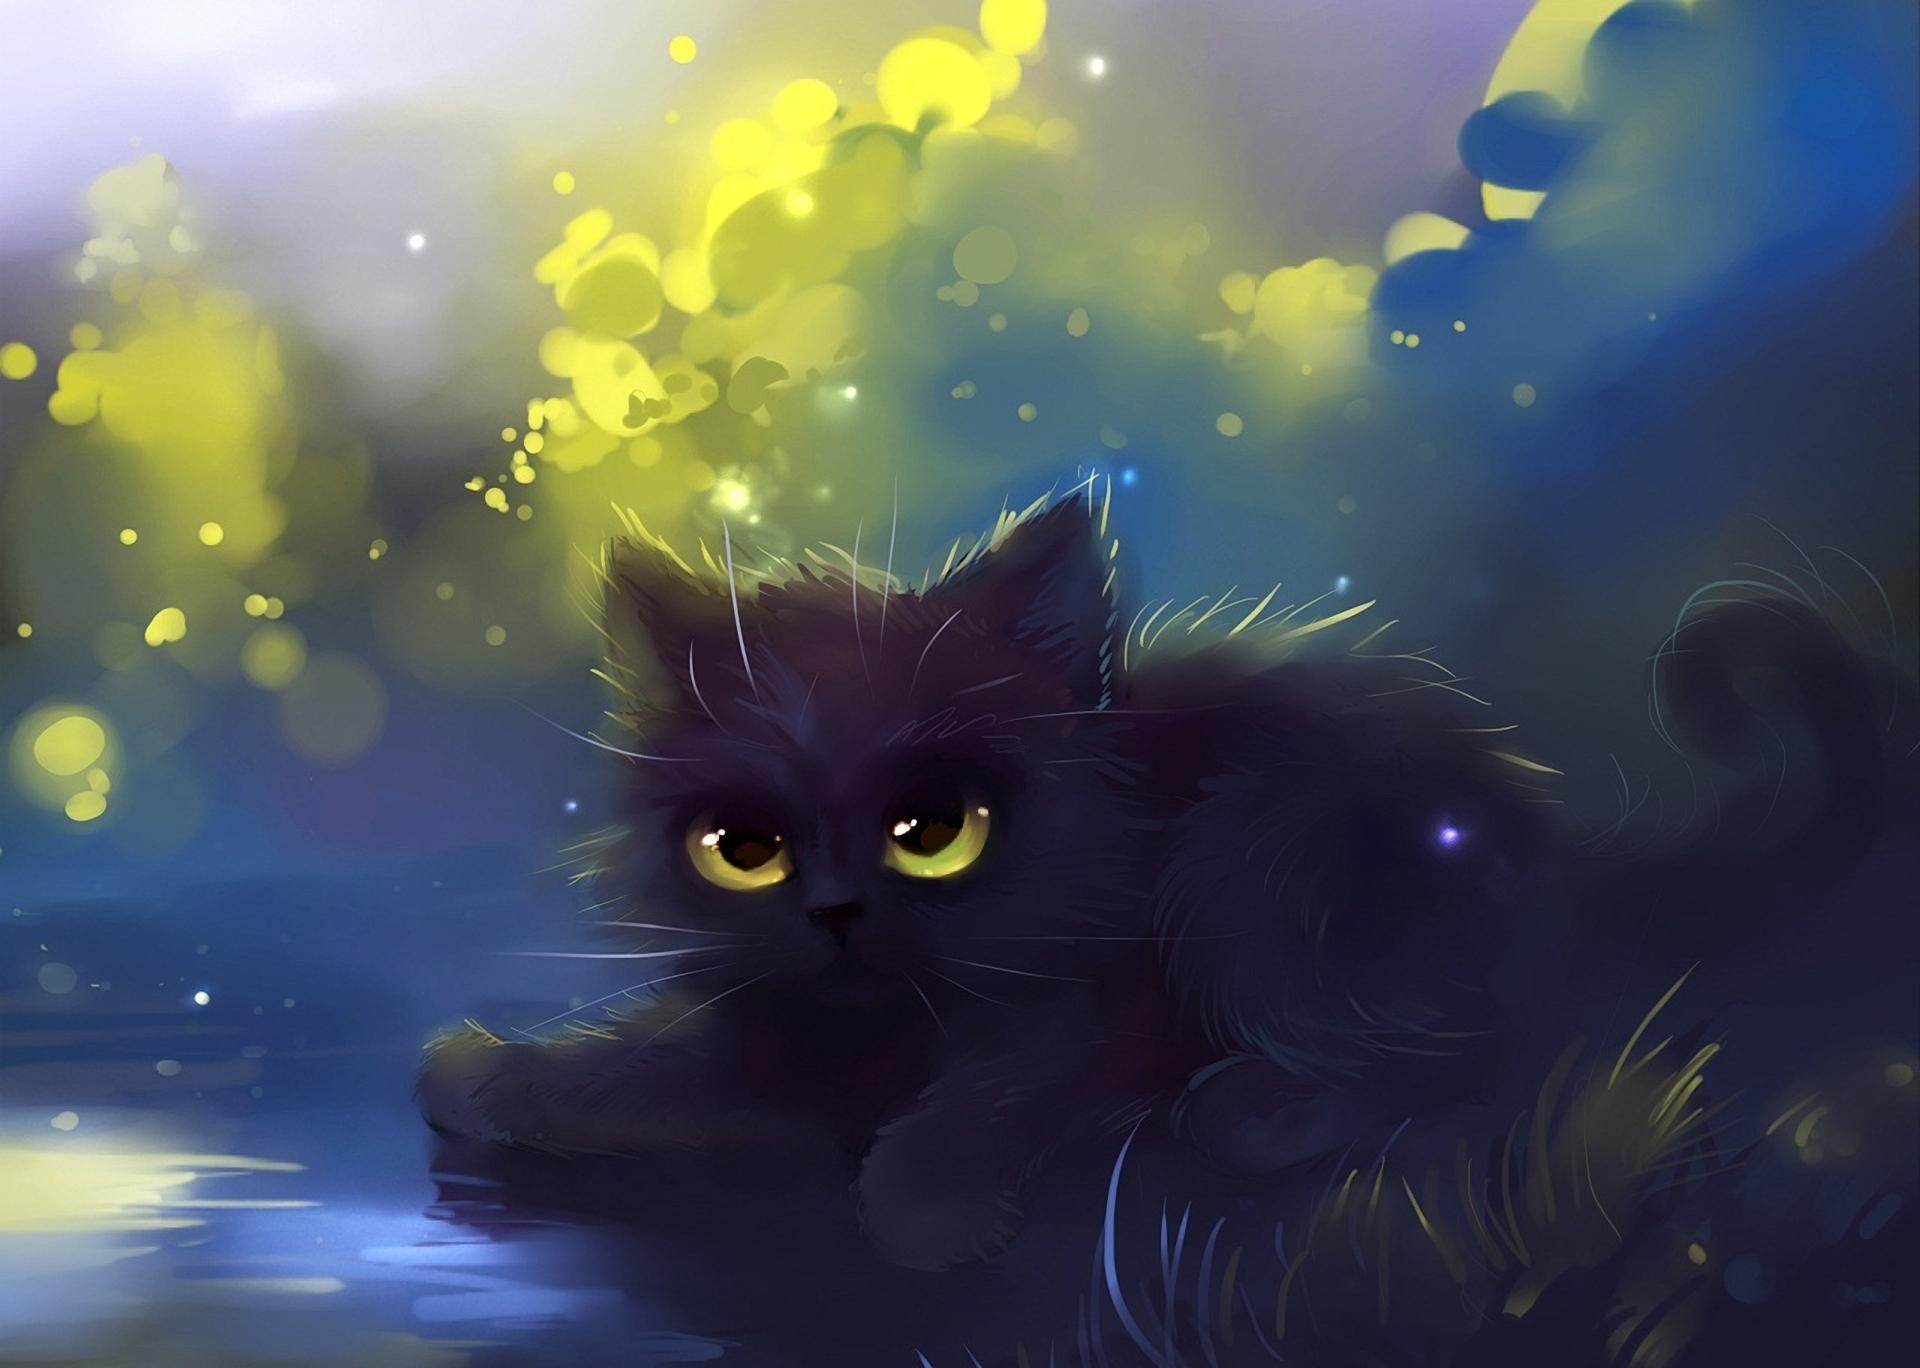 Cute animated animal wallpapers